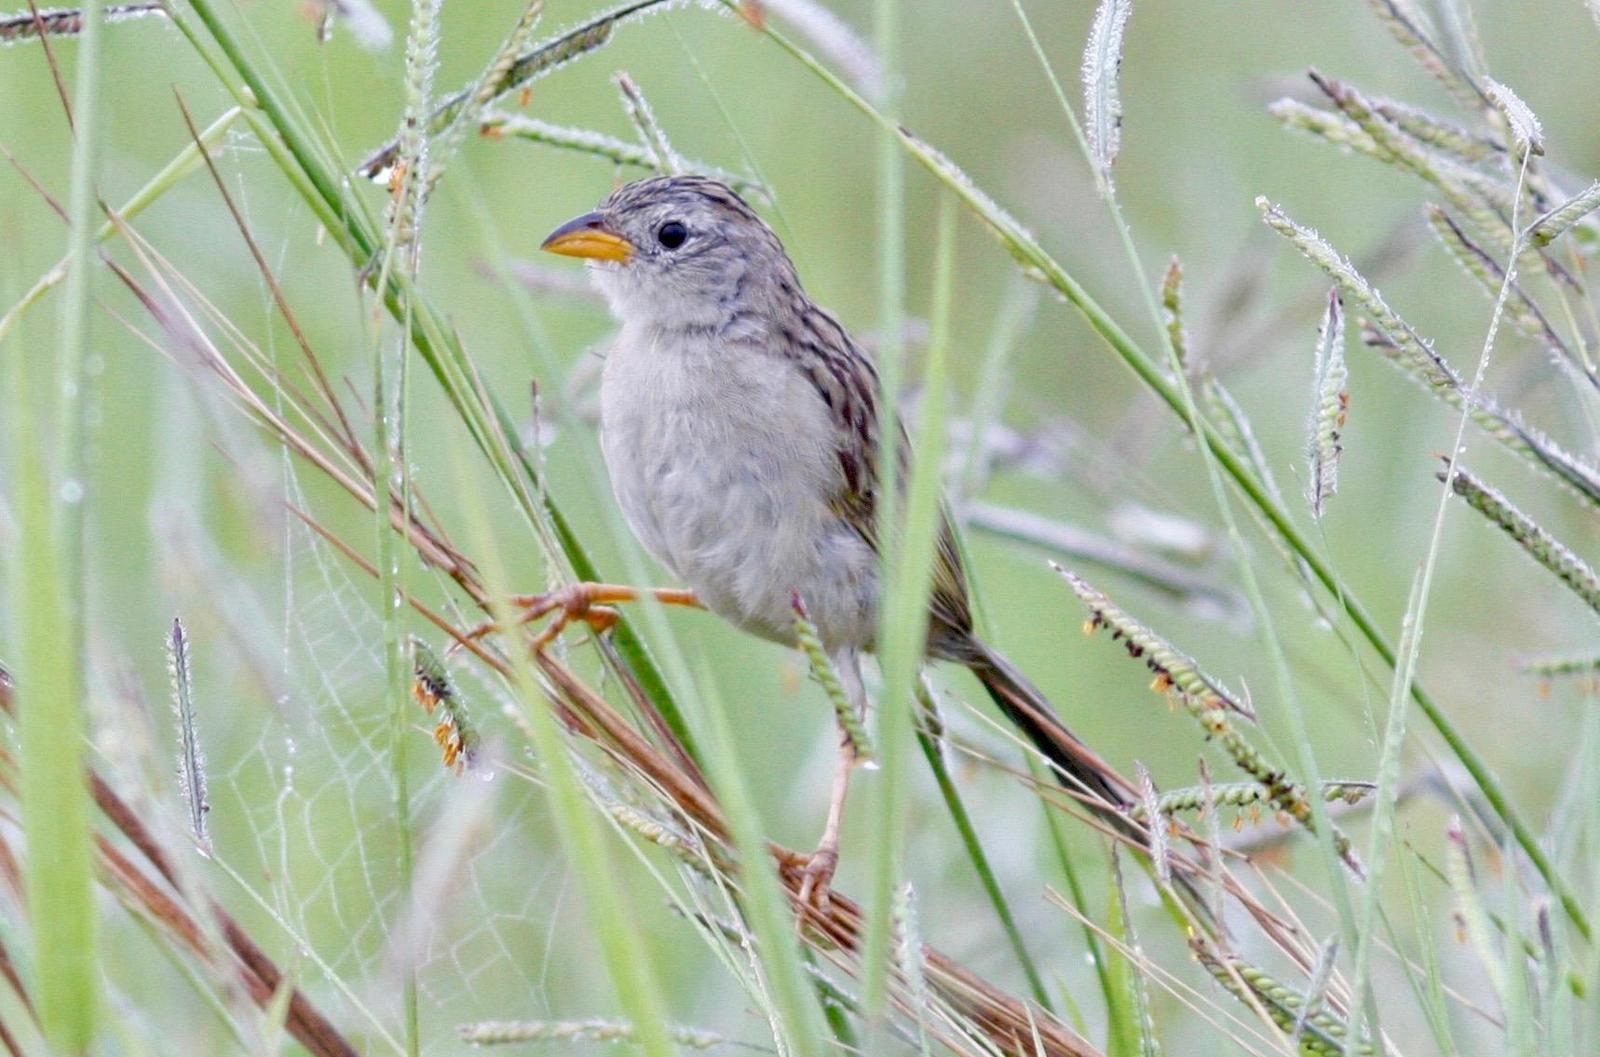 Wedge-tailed Grass-Finch Photo by Andre  Moncrieff